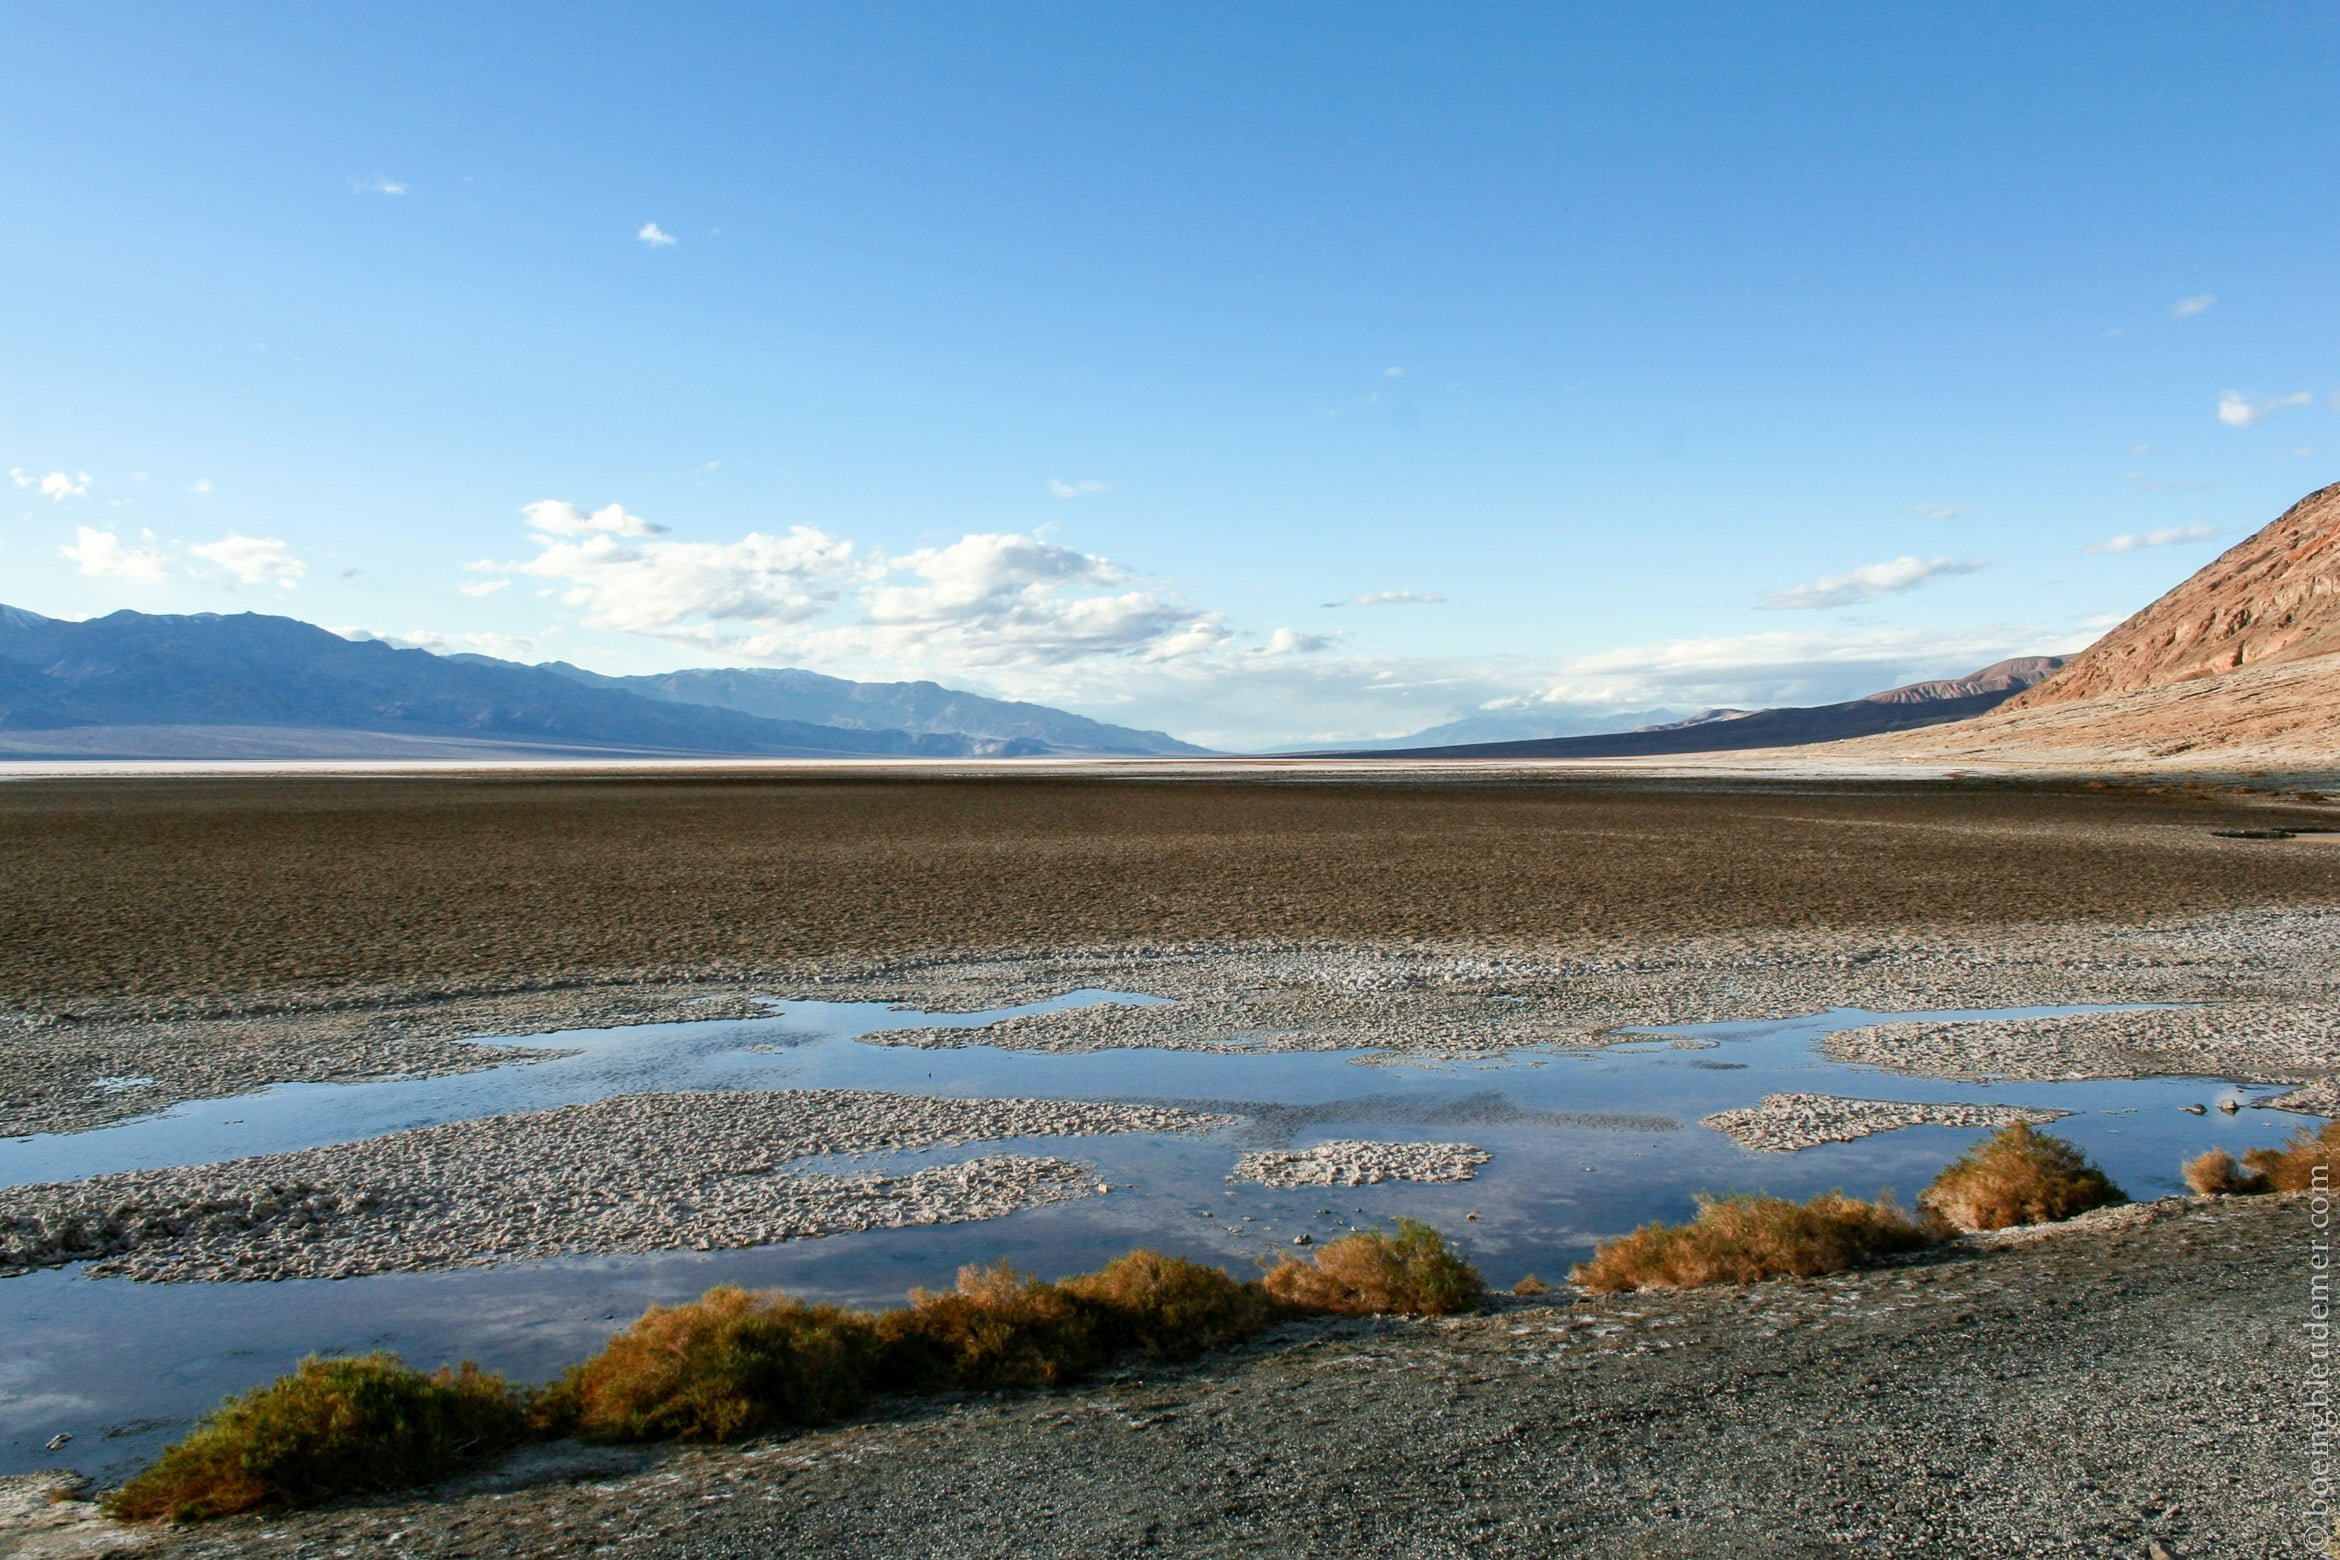 Bad Waters, Death Valley National Park, CA